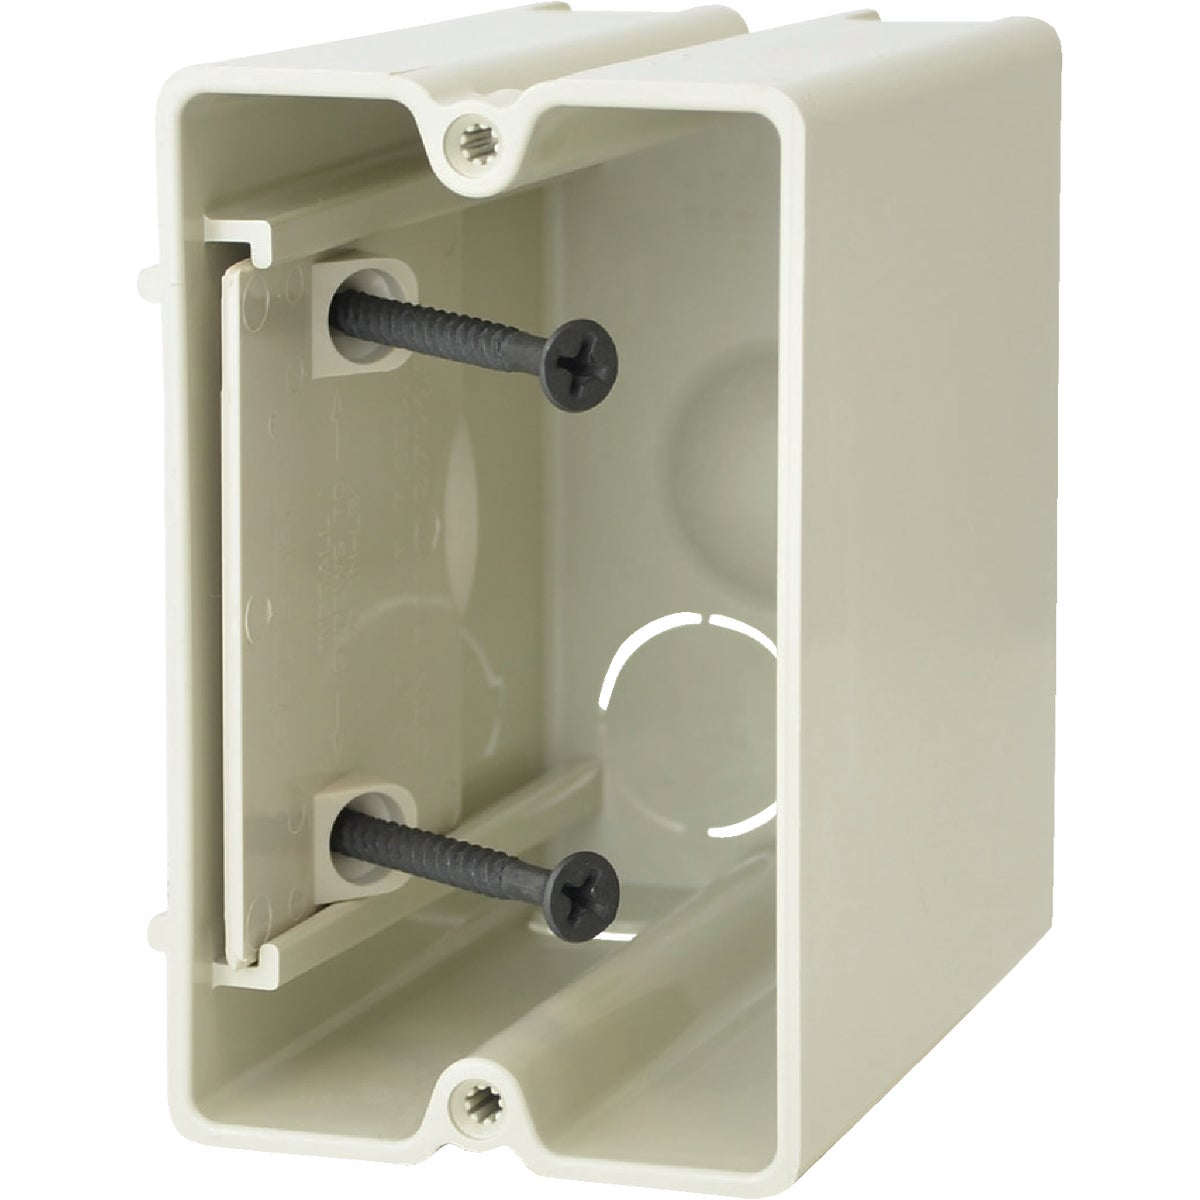 SINGLE GANG SLIDER BOX - SB-1 by Allied Moulded